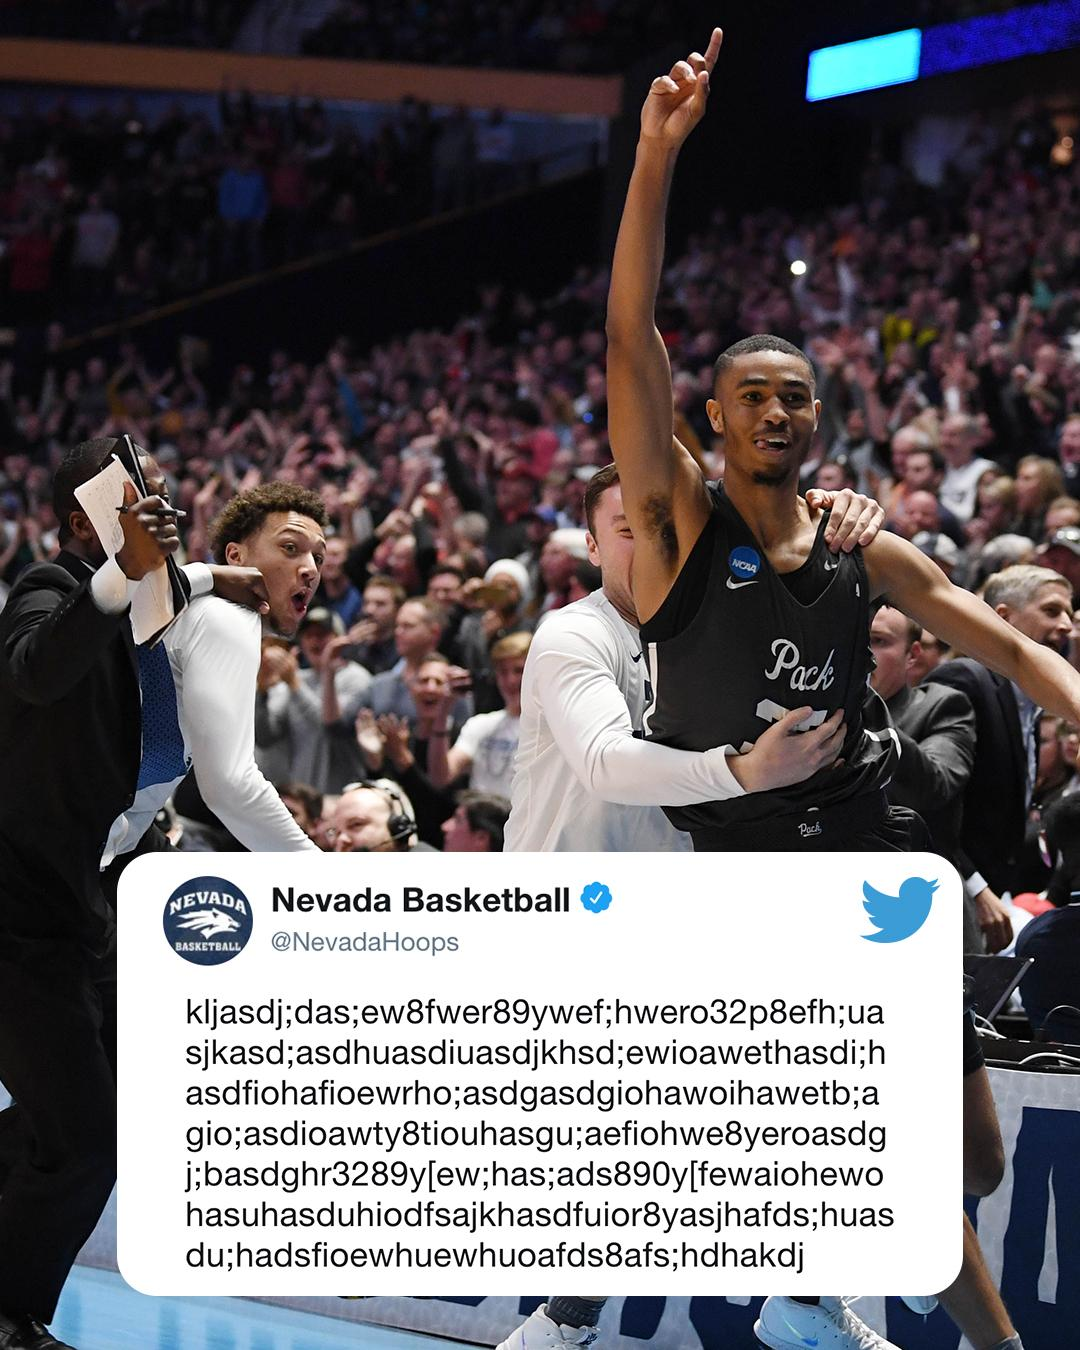 Translation: Nevada rallied from 22 down to make just its 2nd Sweet 16 ever. https://t.co/jFLT5ZrvG6